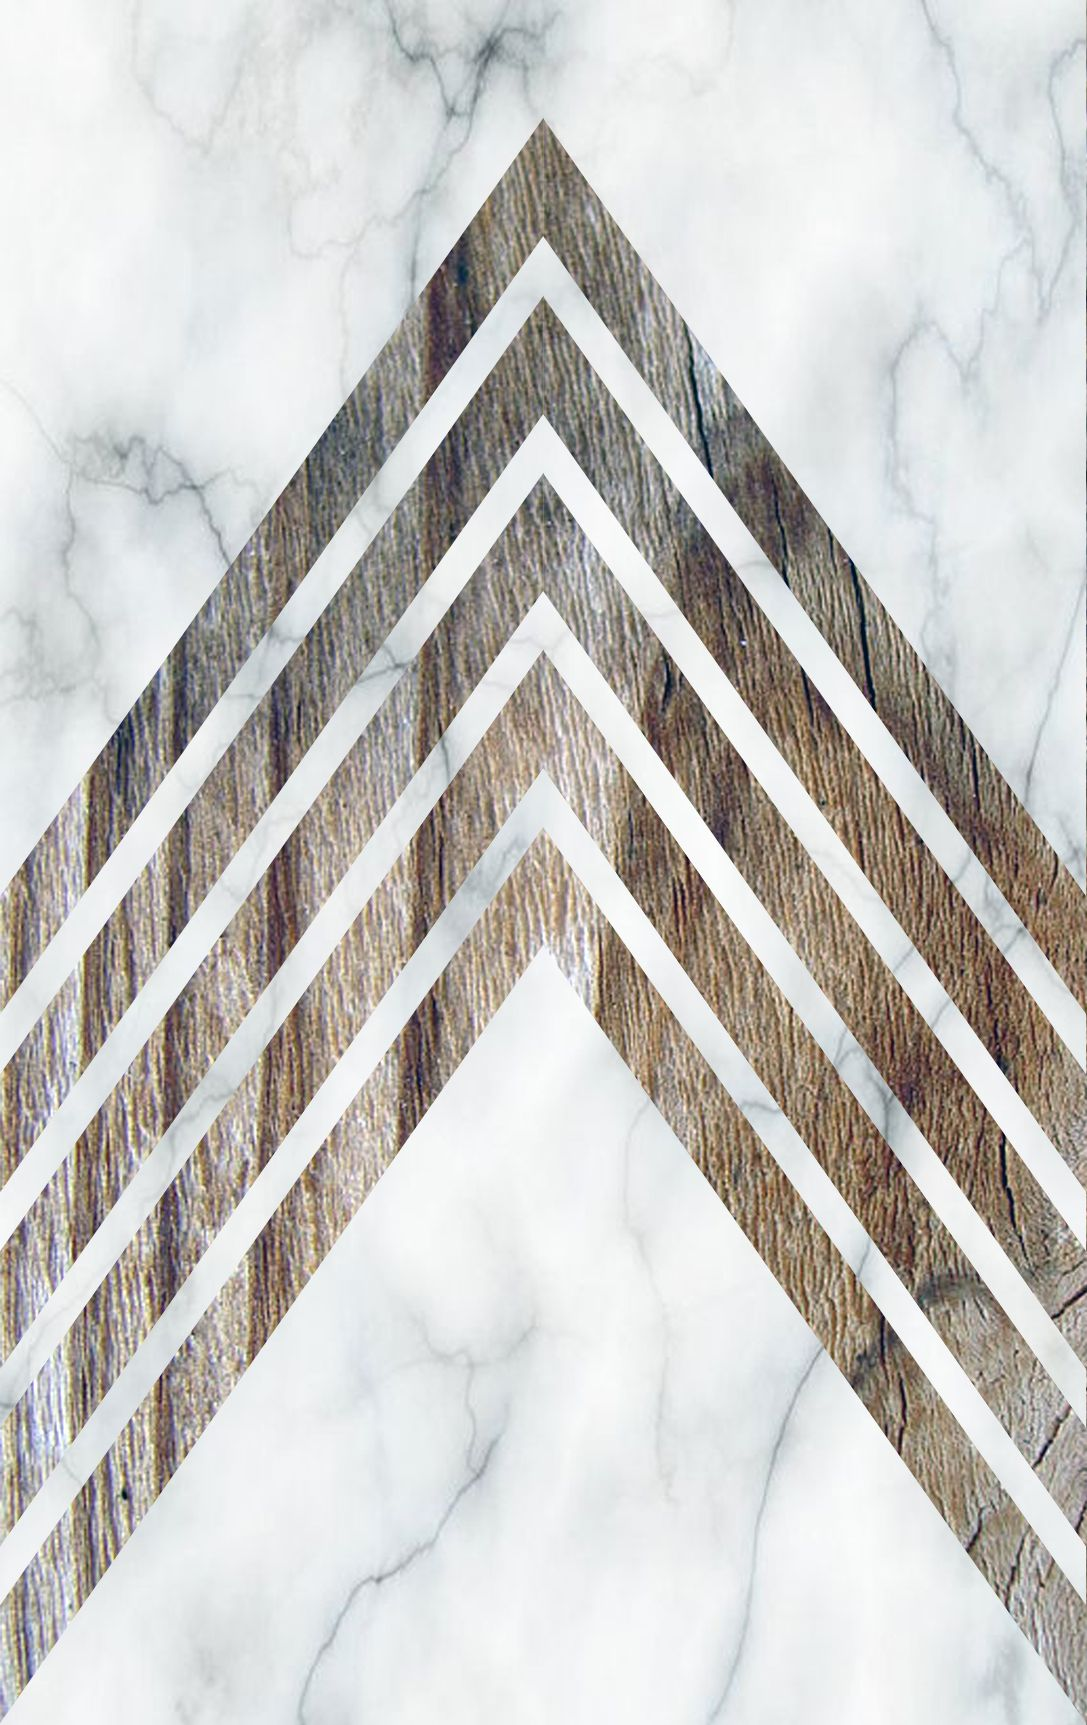 Popular Wallpaper Marble Iphone 6 - eff2379461324a7a3ad3f1758b41cbd0  Collection_6474100.jpg